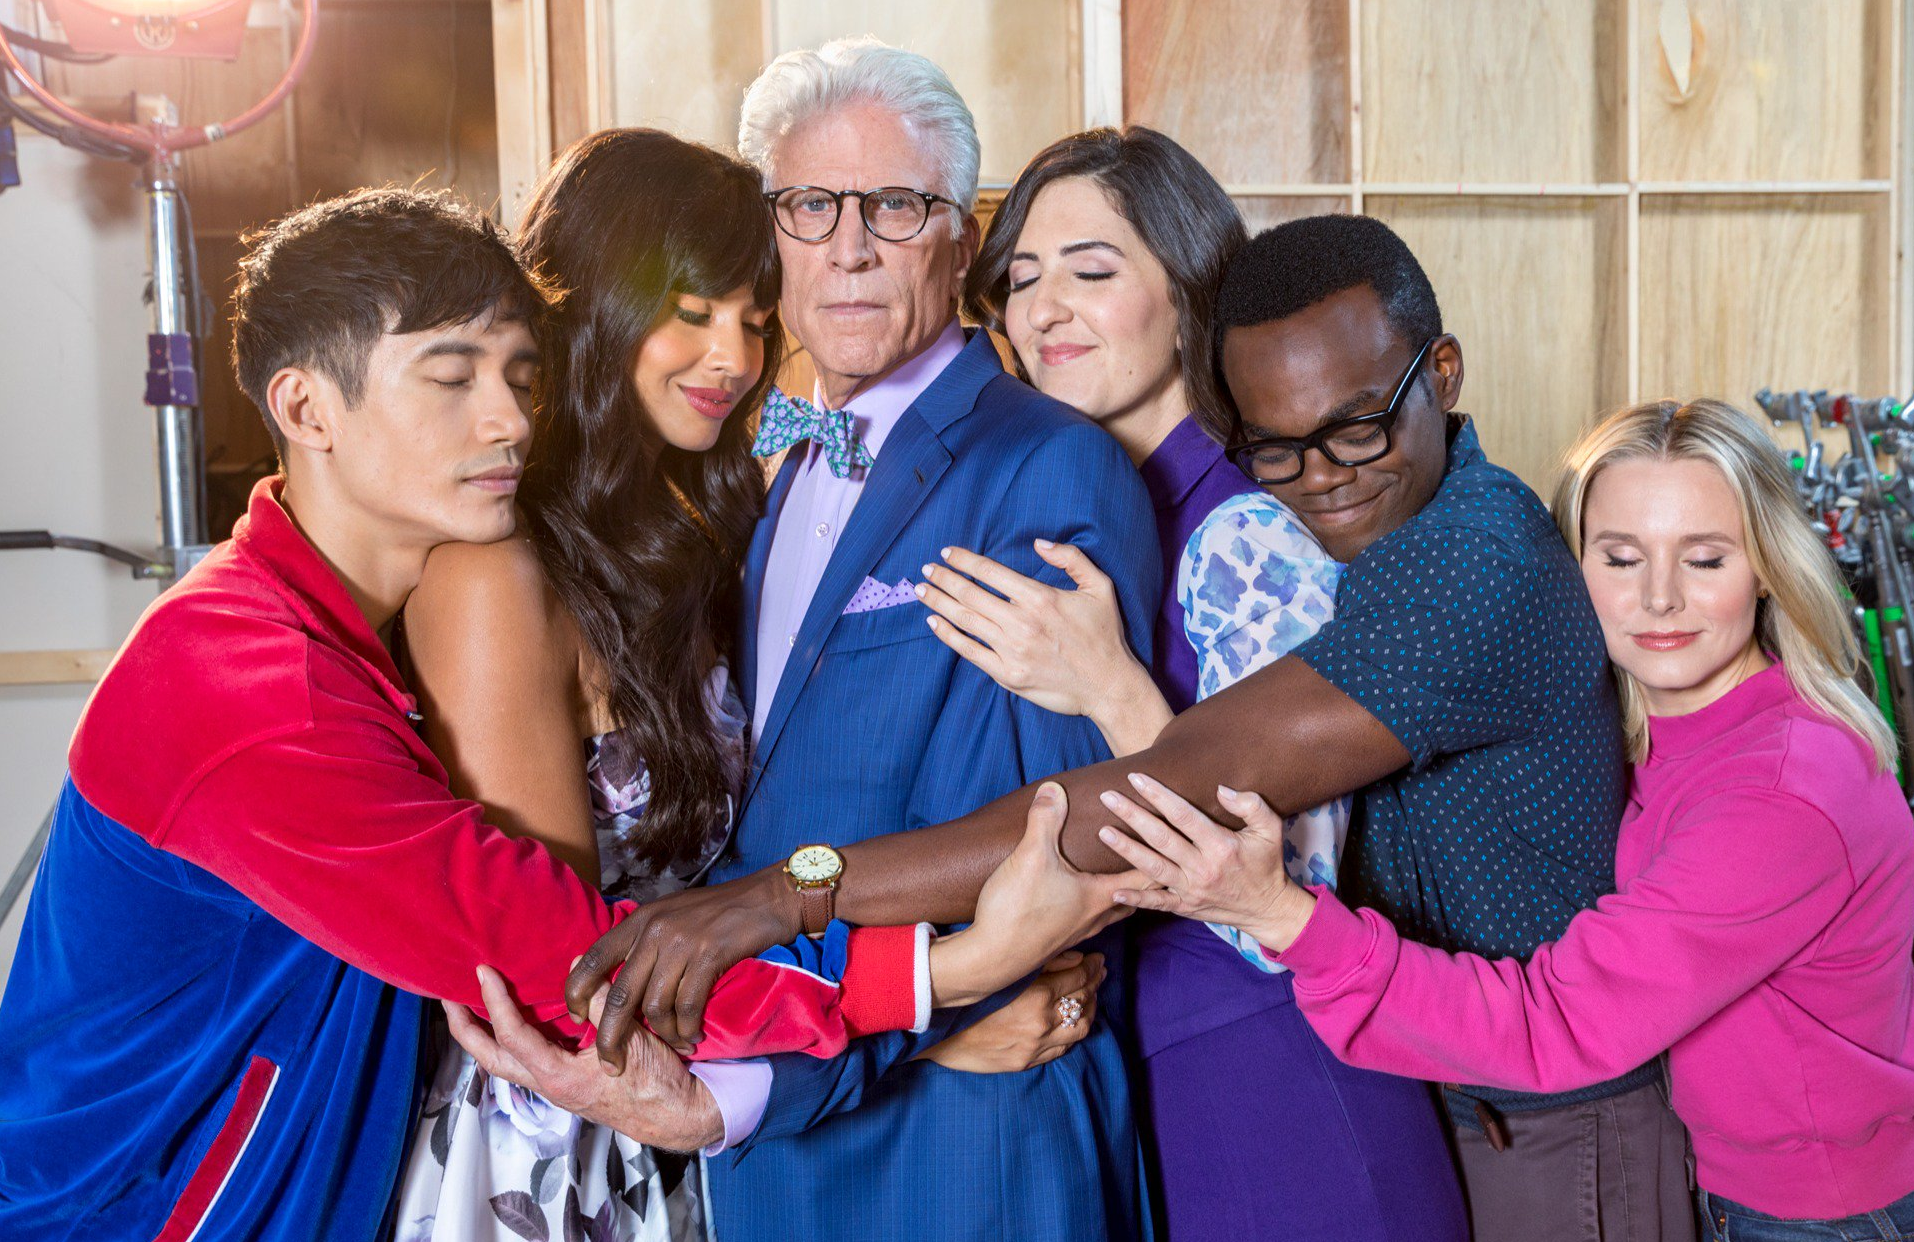 The Good Place's Manny Jacinto, Jameela Jamil, Ted Danson, William Jackson Harper, and Kristen Bell (NBC)